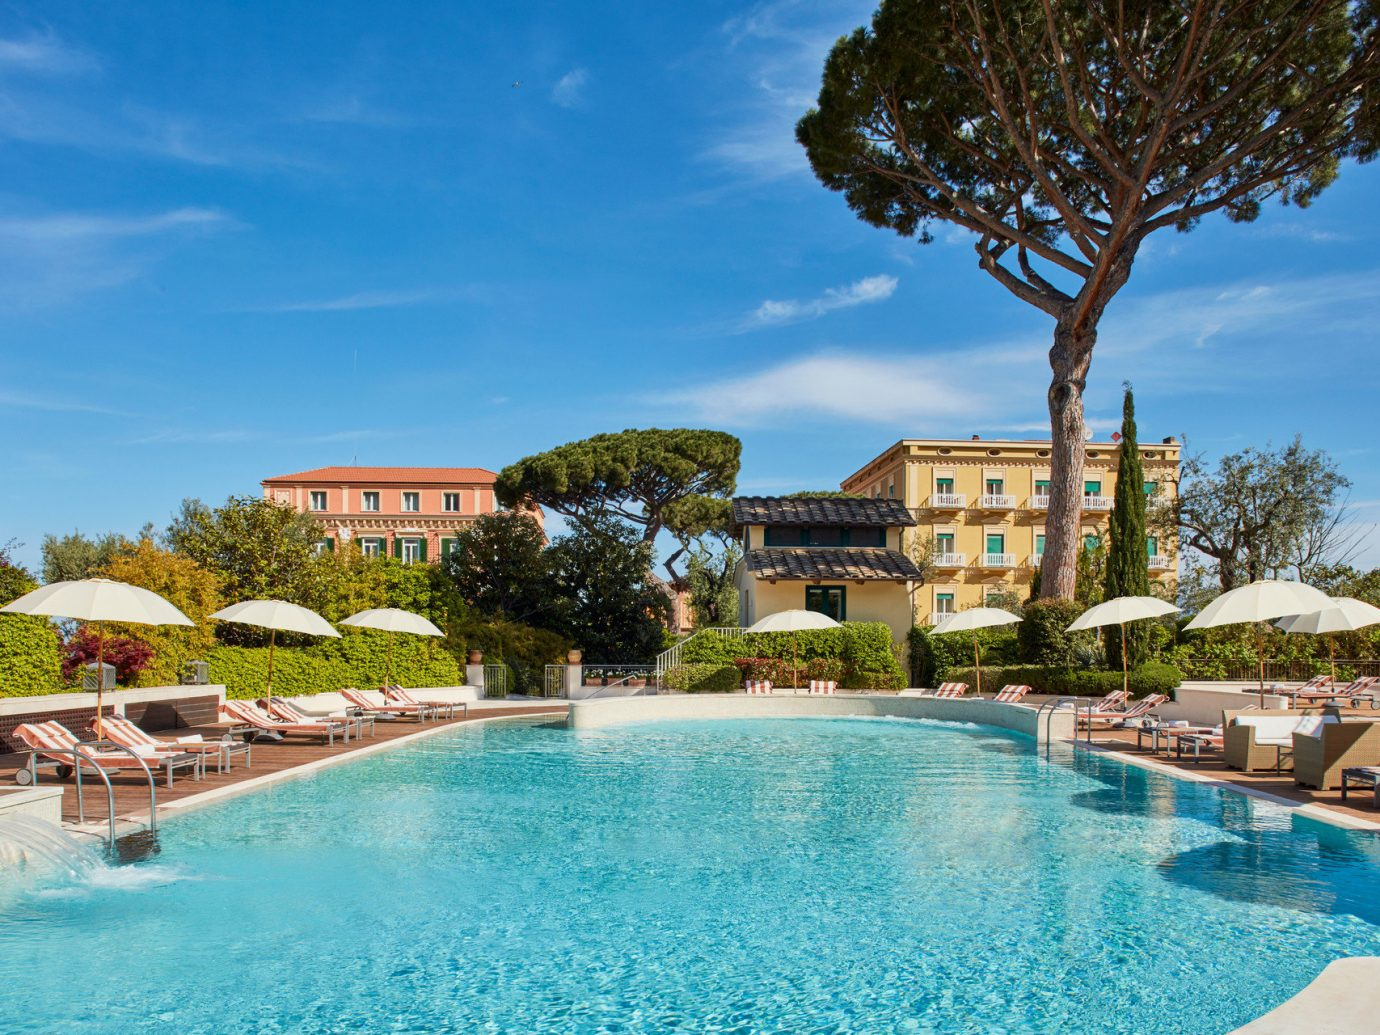 Pool and exterior view of Grand Hotel Excelsior Vittoria, Sorrento